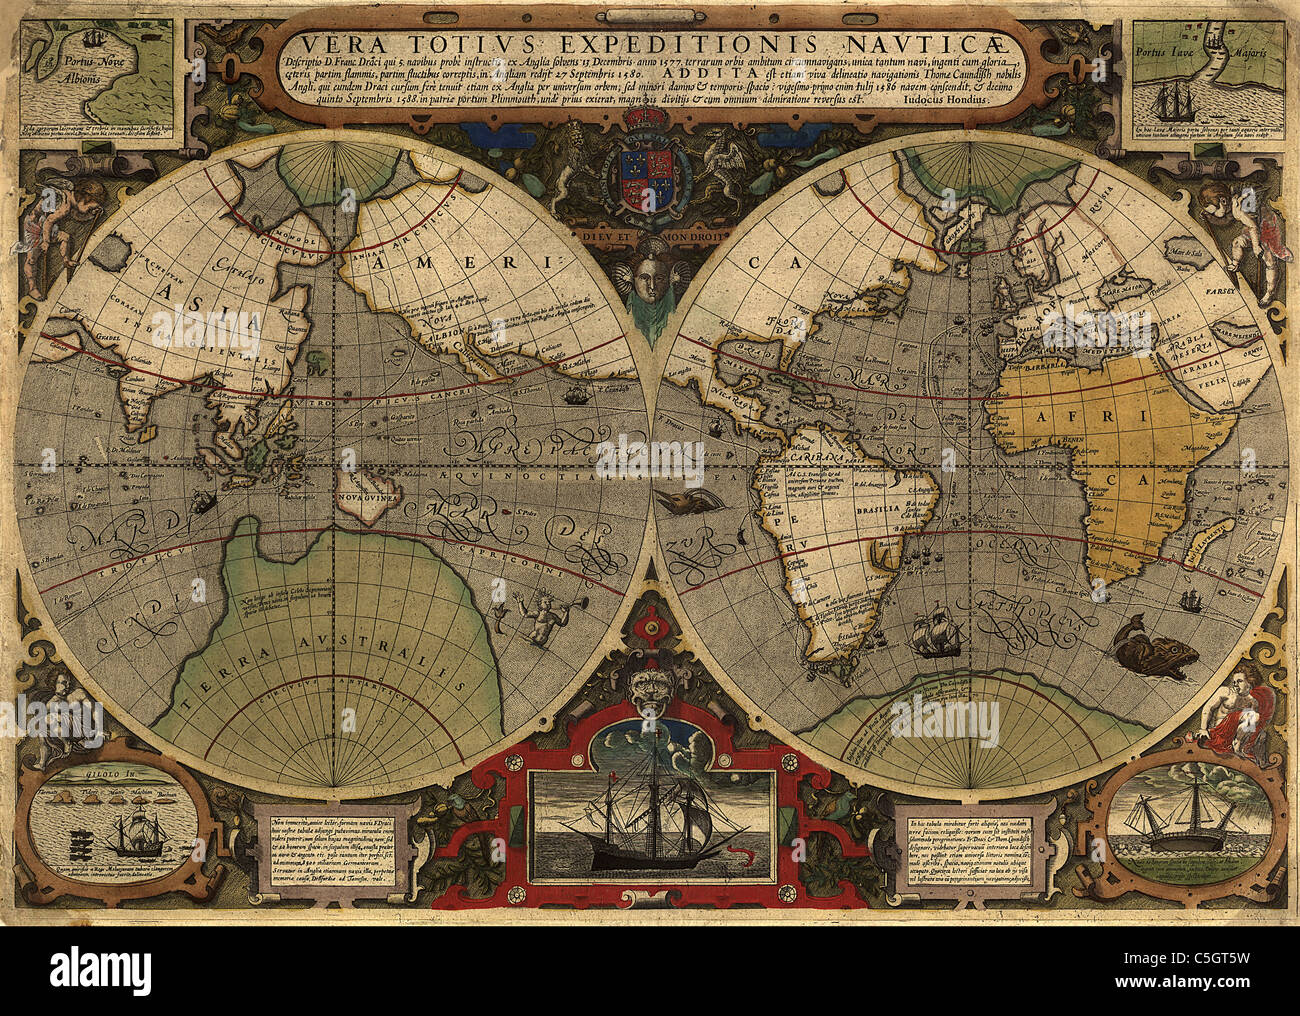 vera totius expeditionis nauticæ - Antique World Map by Jodocus Hondius, 1895 - Stock Image